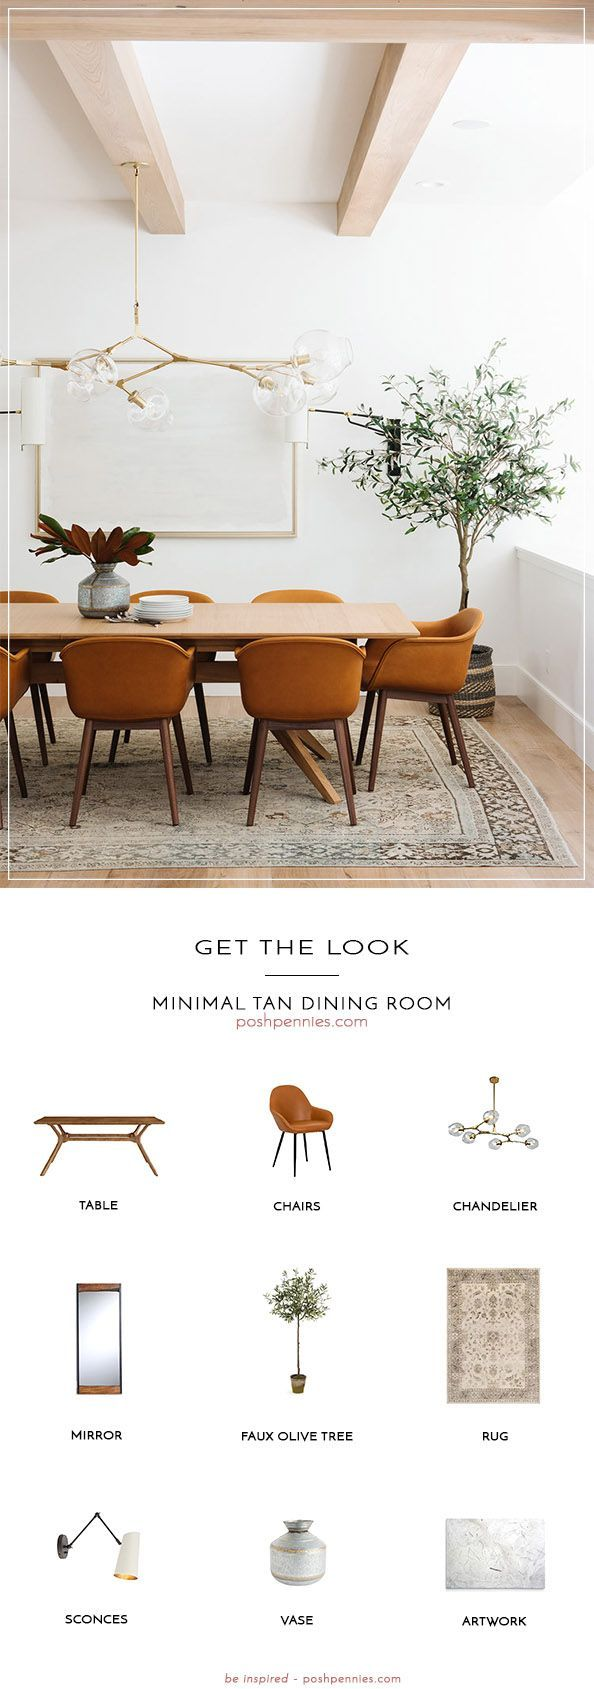 Get The Look: Minimal Tan Dining Room images